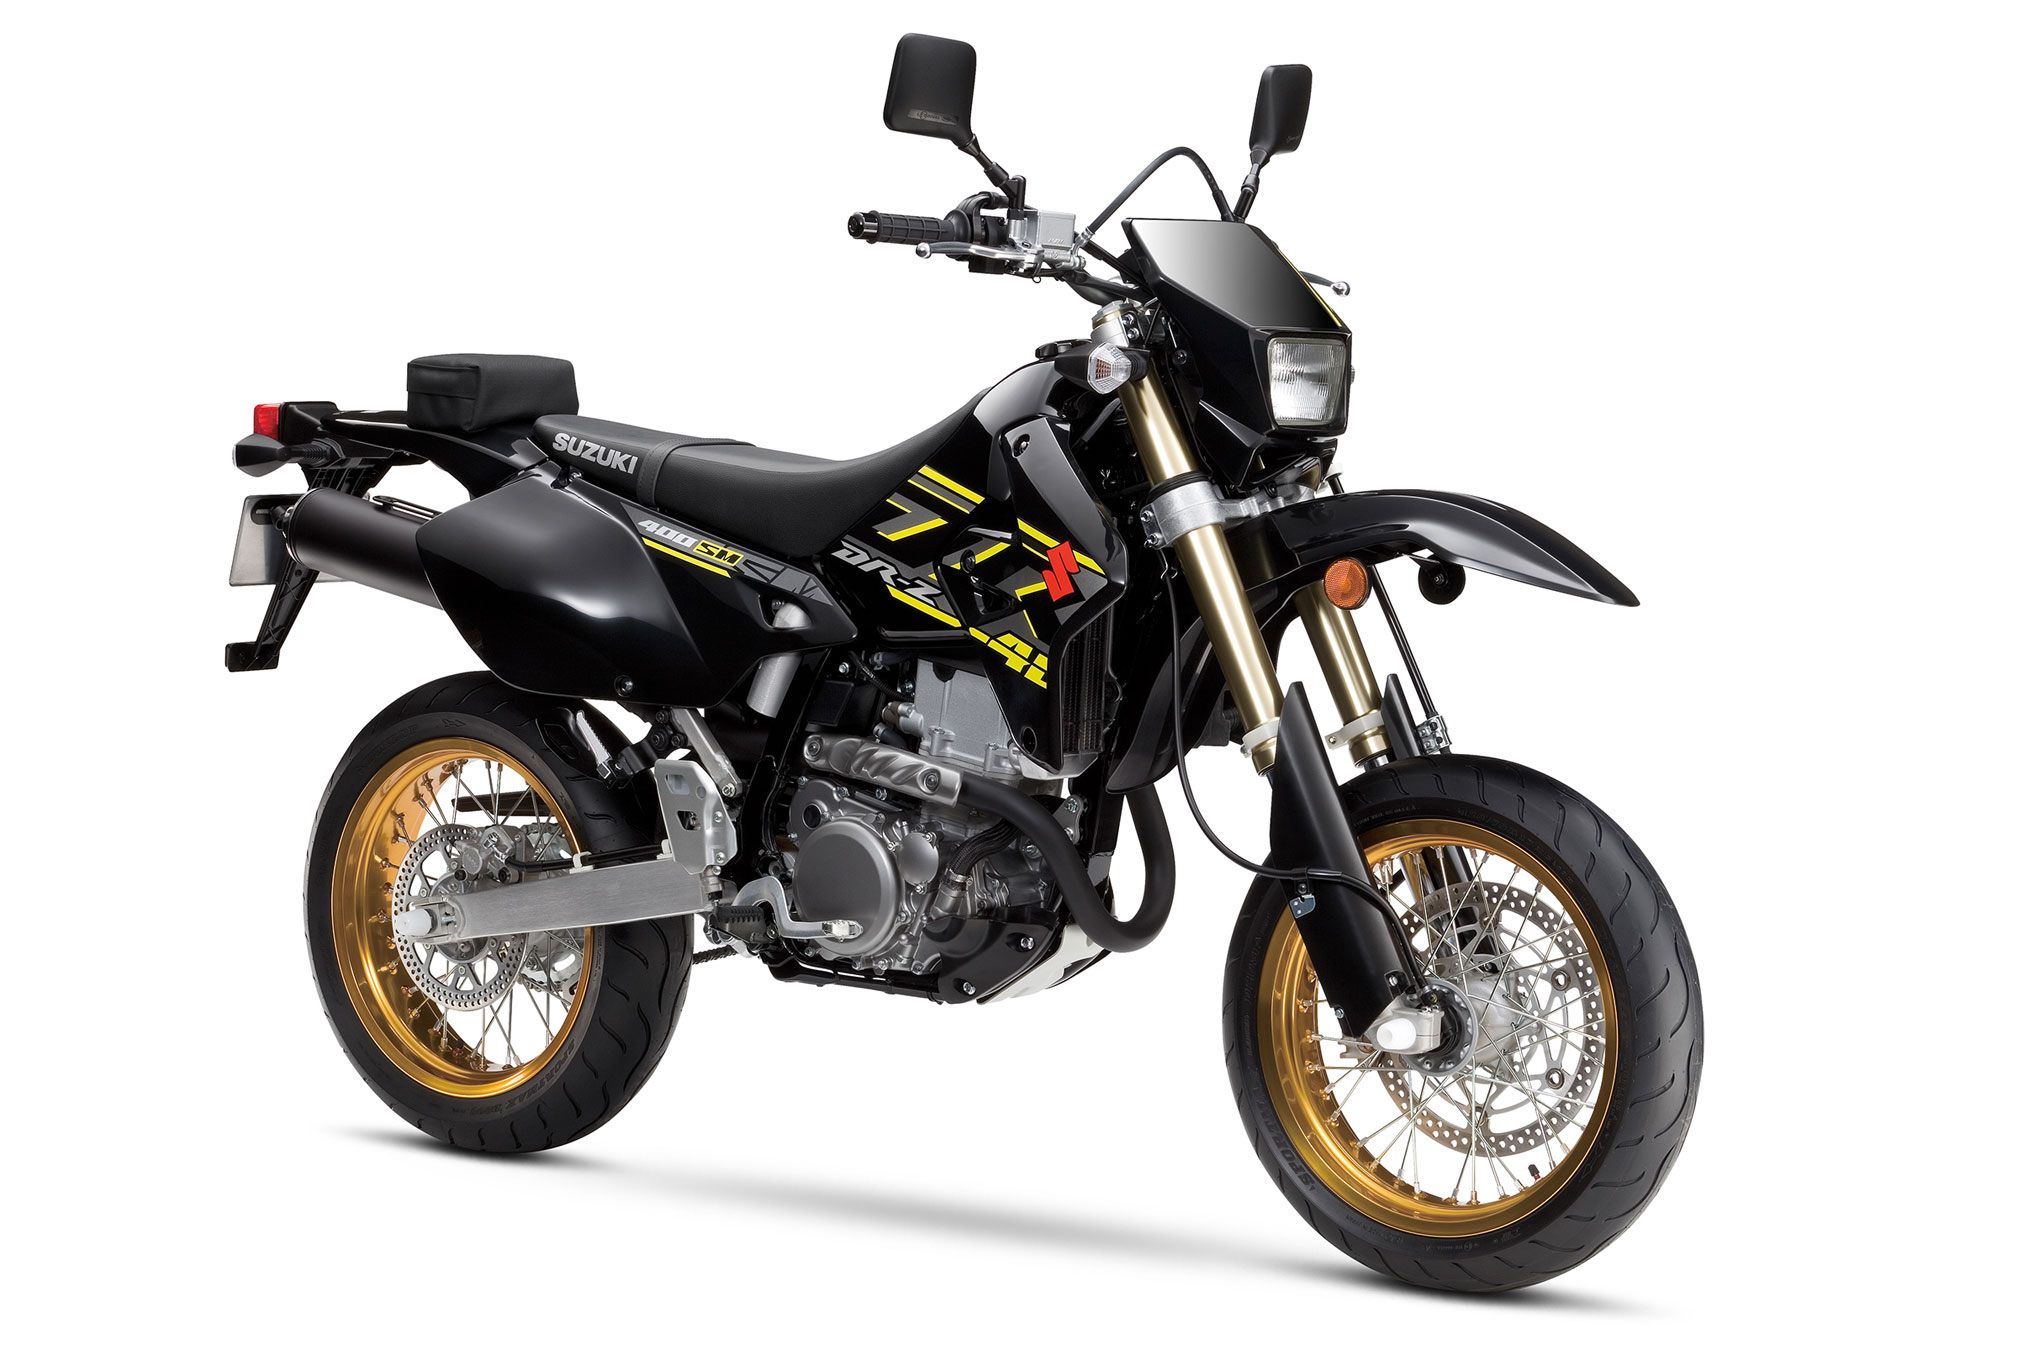 2018 suzuki dr z400sm review total motorcycle. Black Bedroom Furniture Sets. Home Design Ideas